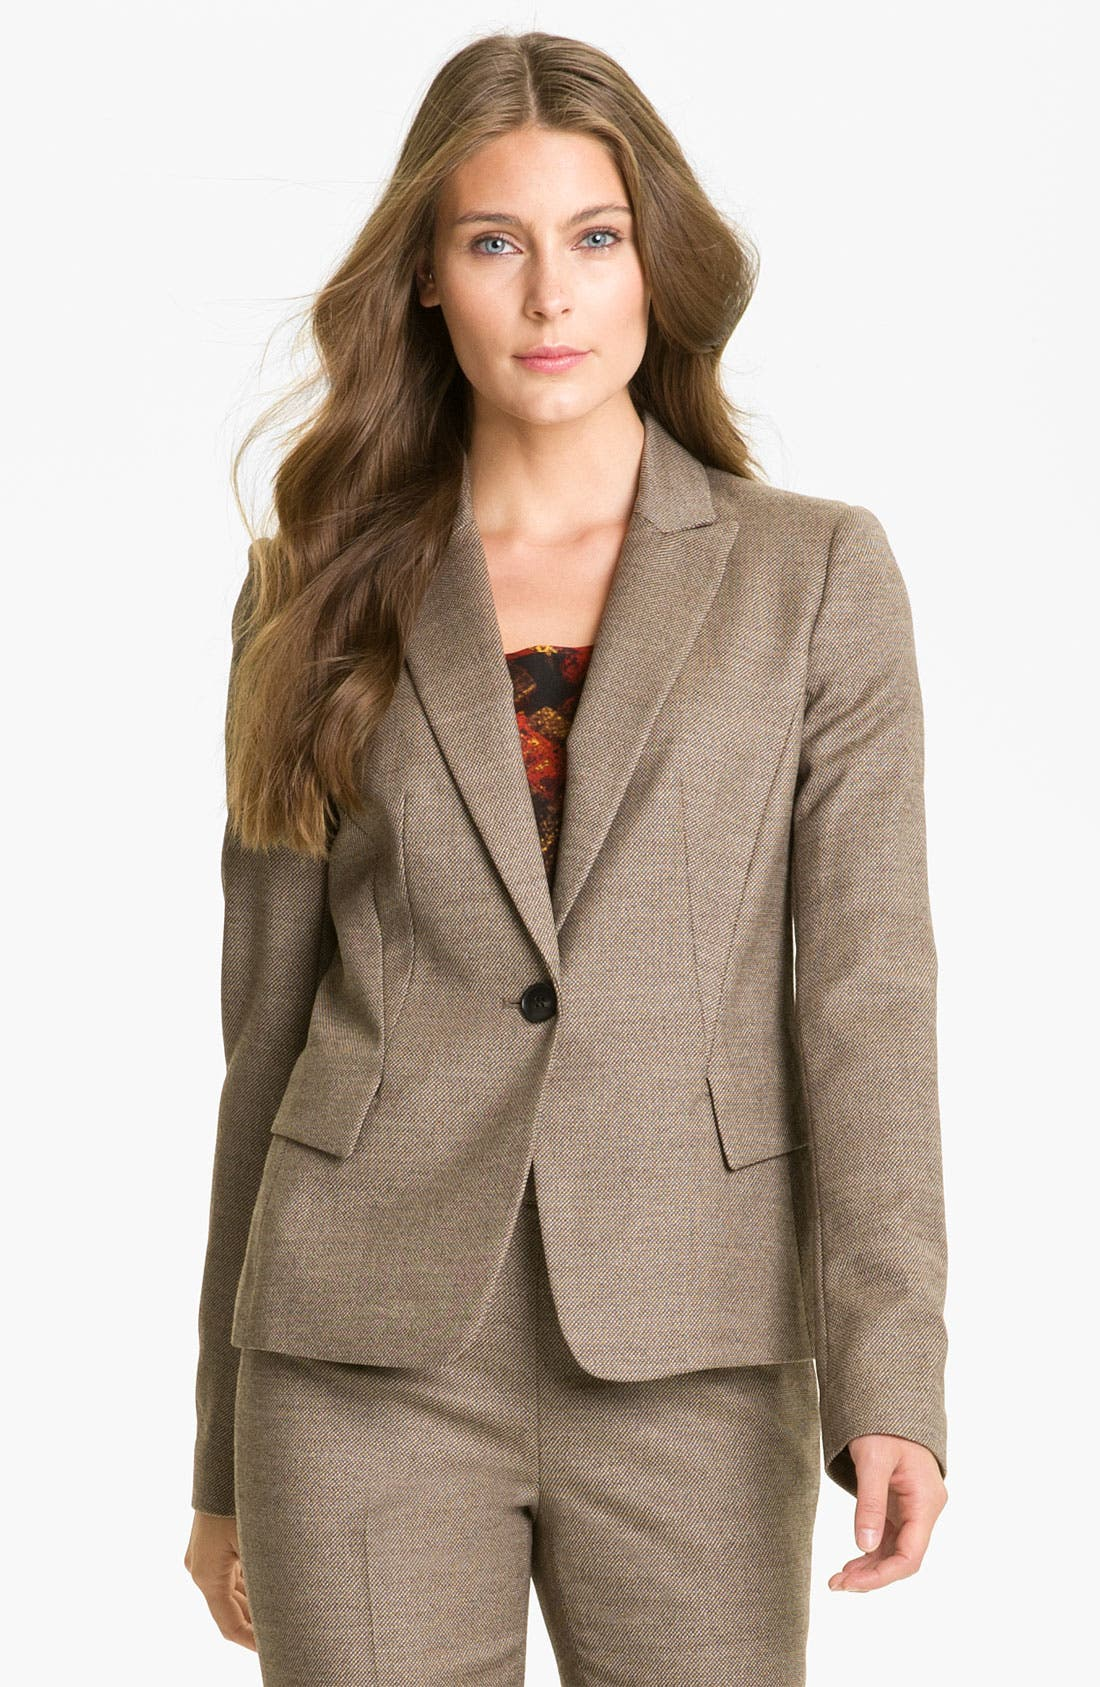 Alternate Image 1 Selected - Lafayette 148 New York 'Poised' Suiting Jacket